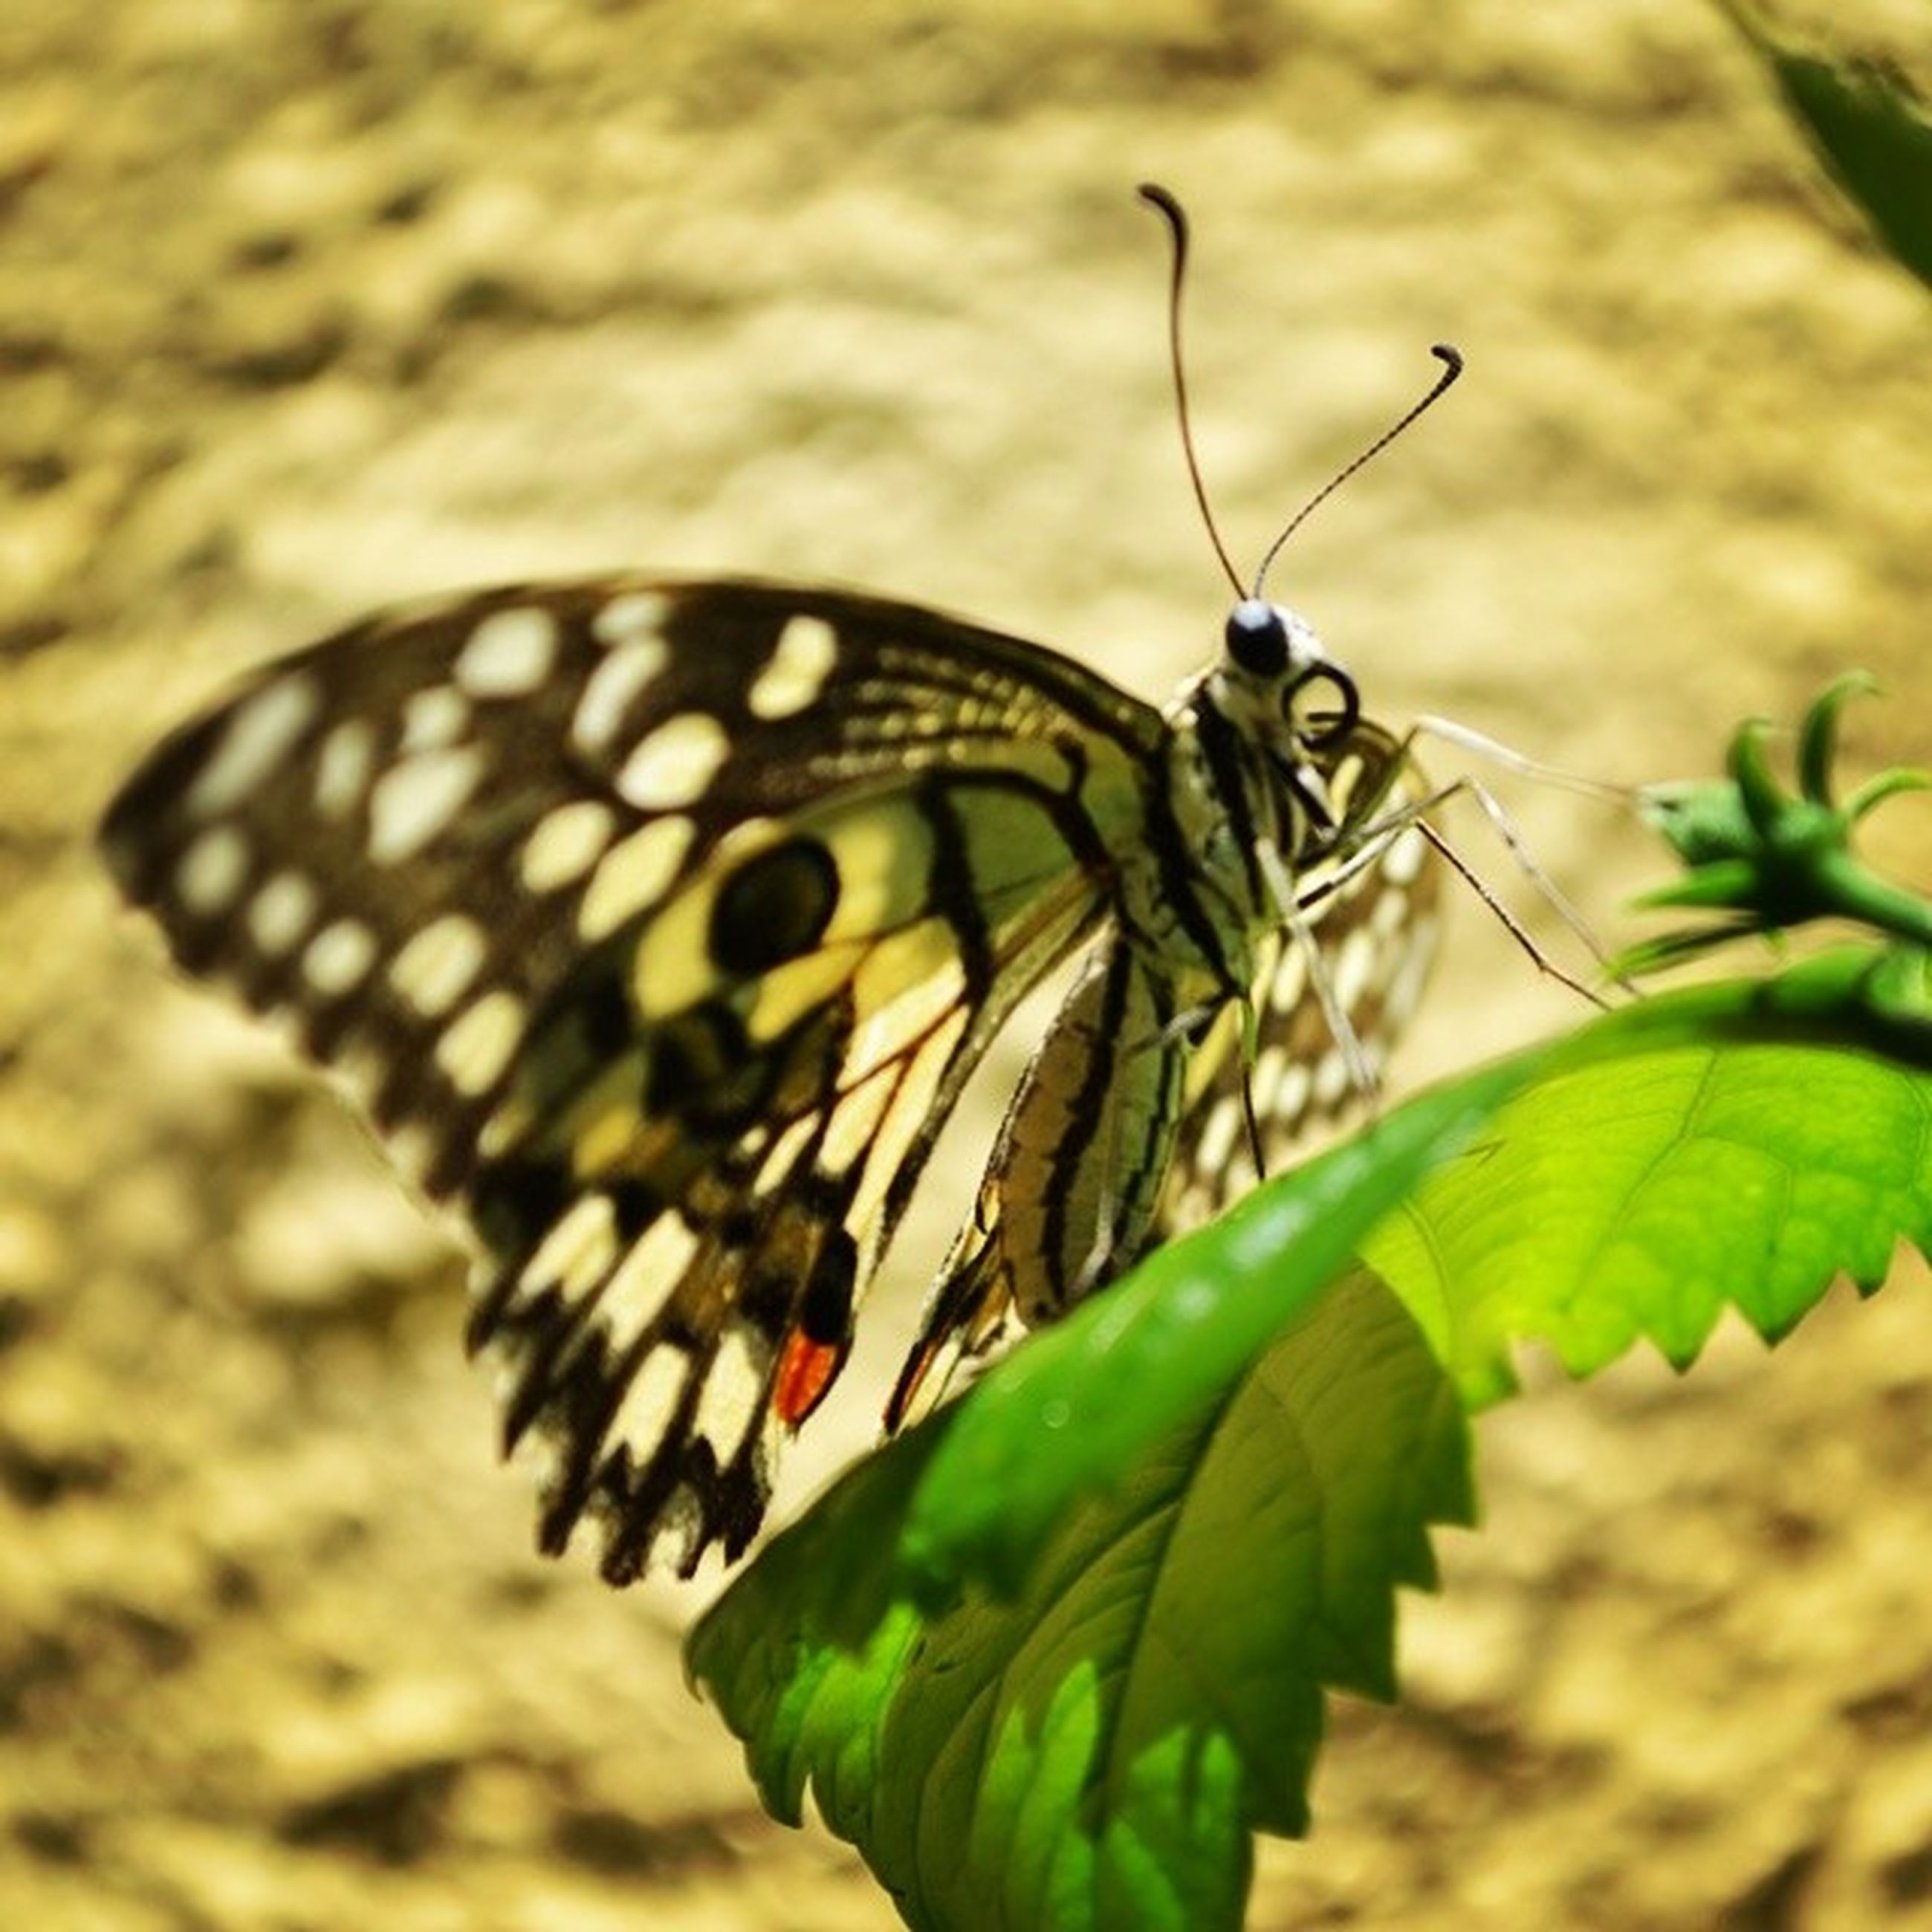 one animal, animals in the wild, animal themes, wildlife, insect, butterfly - insect, close-up, leaf, animal markings, butterfly, focus on foreground, animal wing, natural pattern, nature, green color, perching, animal antenna, high angle view, beauty in nature, outdoors